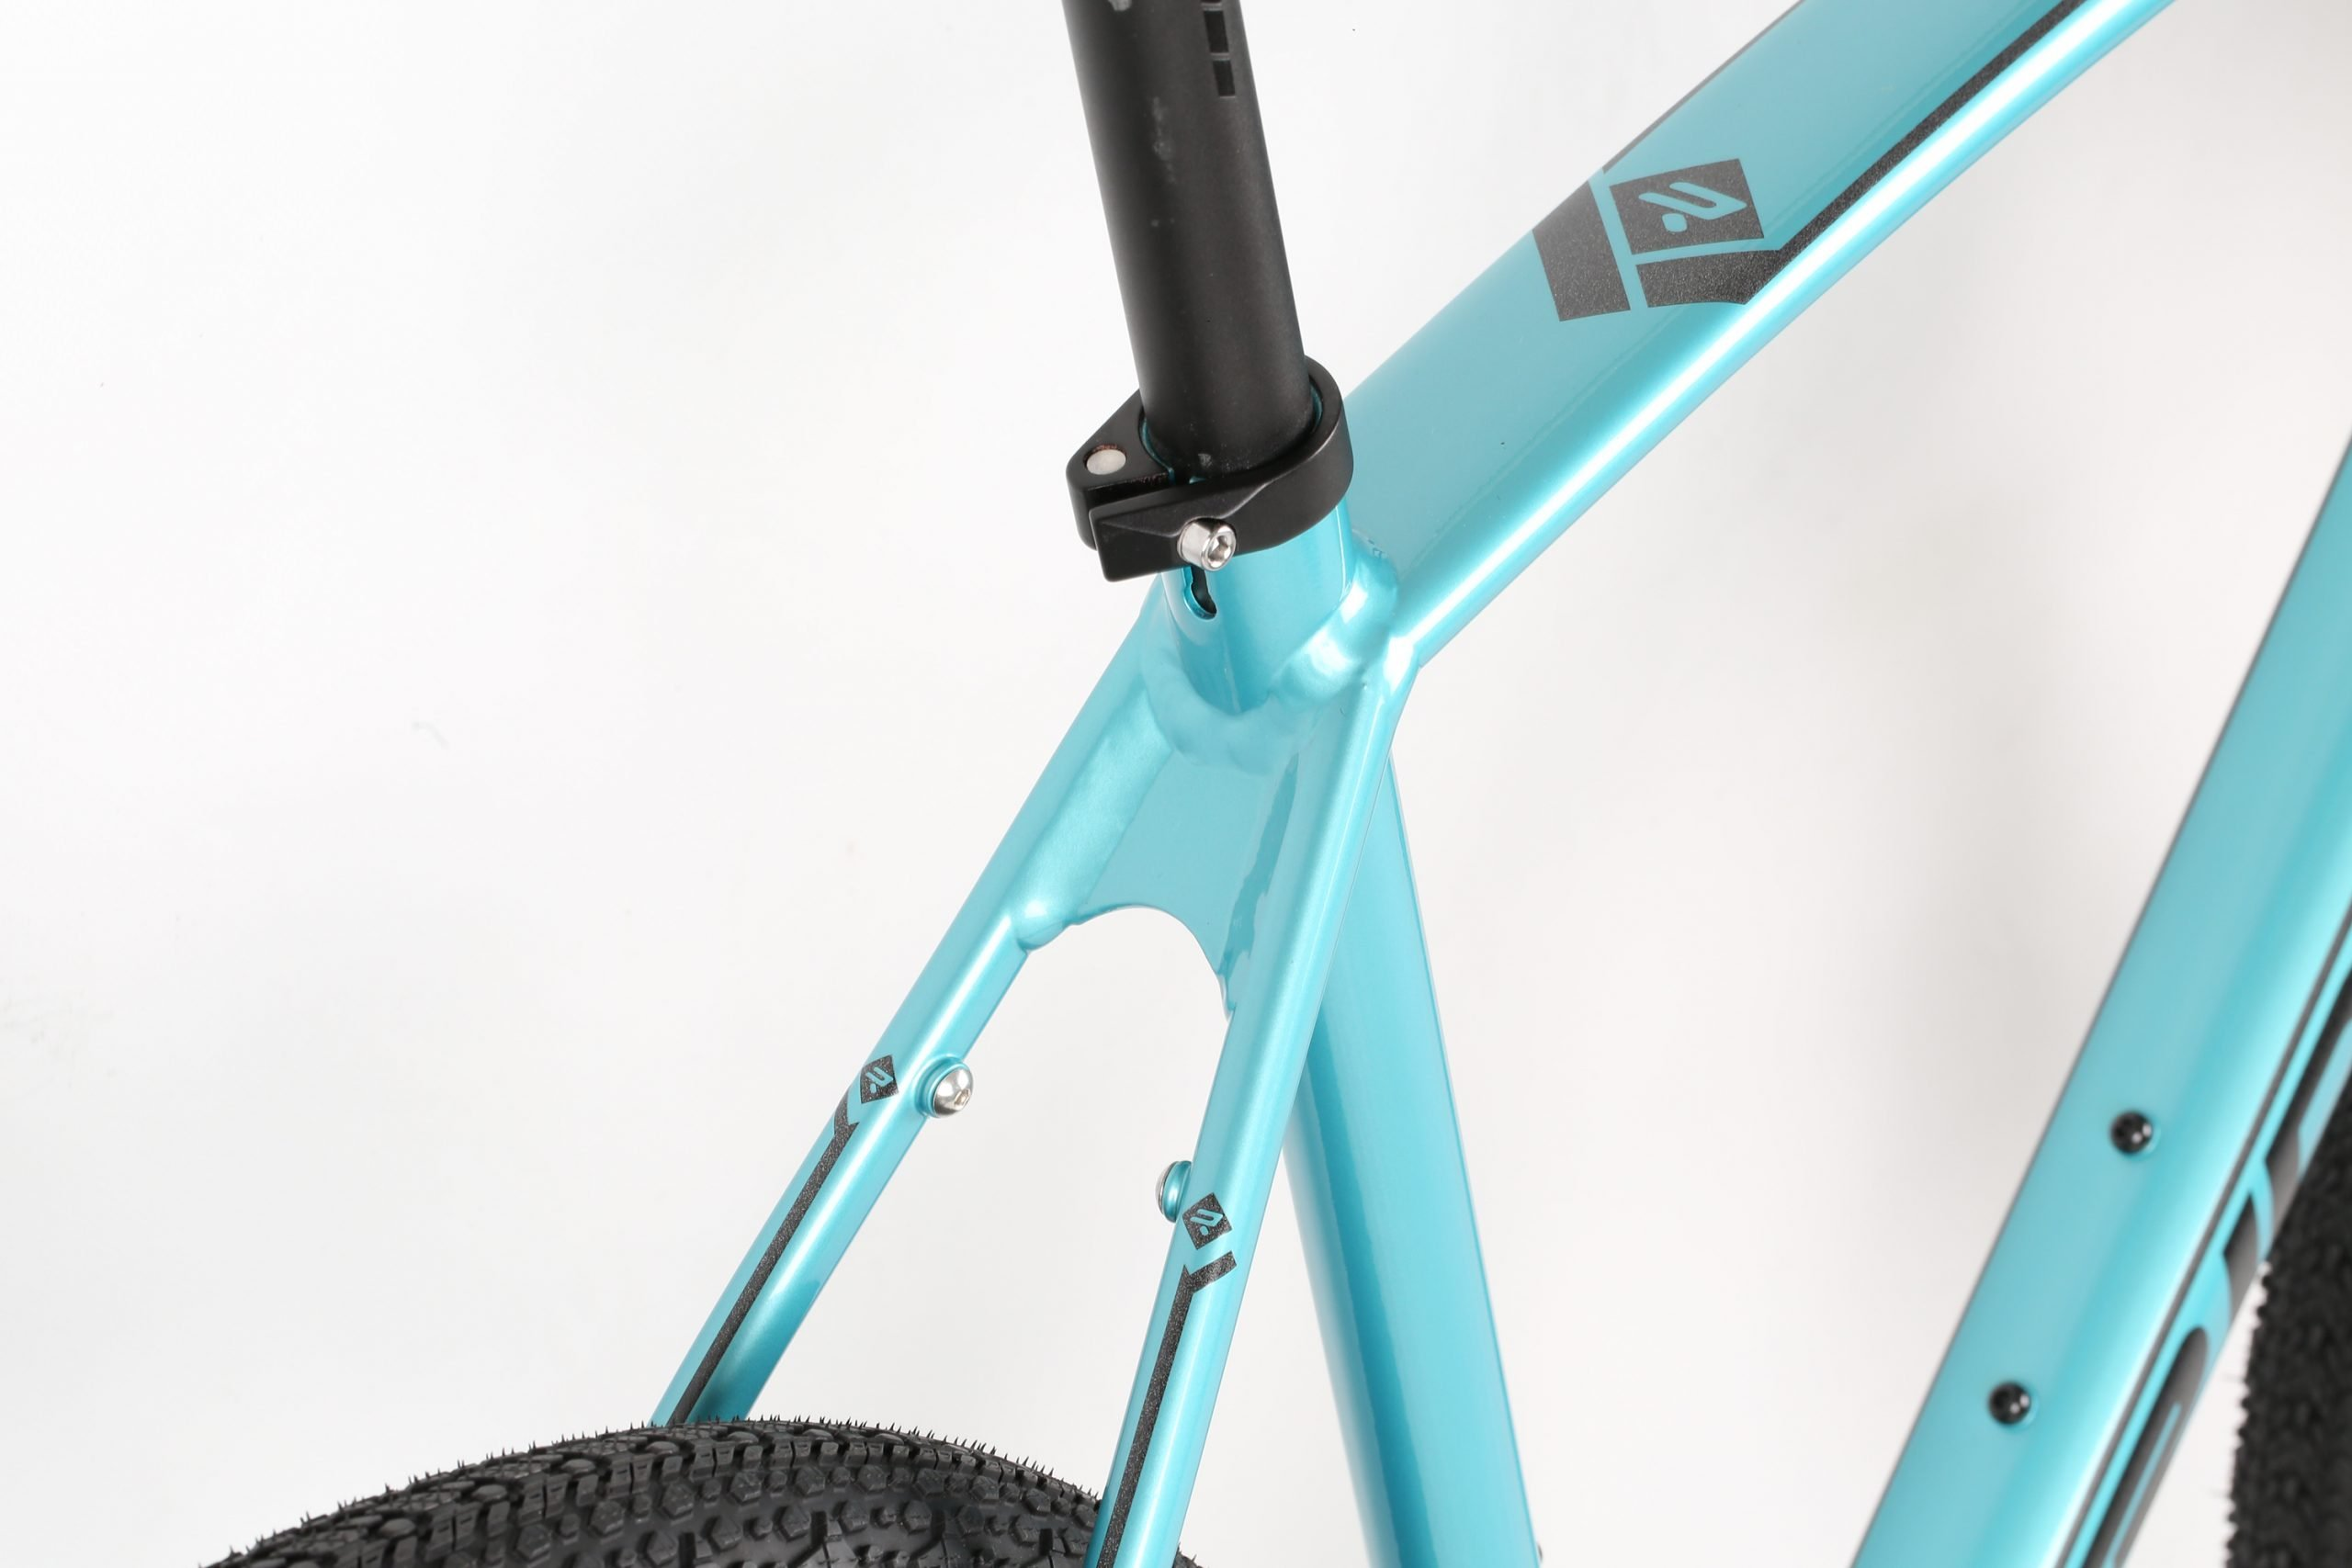 854593a6 ab7d 4176 9259 9be0775fb383.ae122fa021a3005d873486d38db0dbee scaled Ridley X-Trail Gravel Bicycle